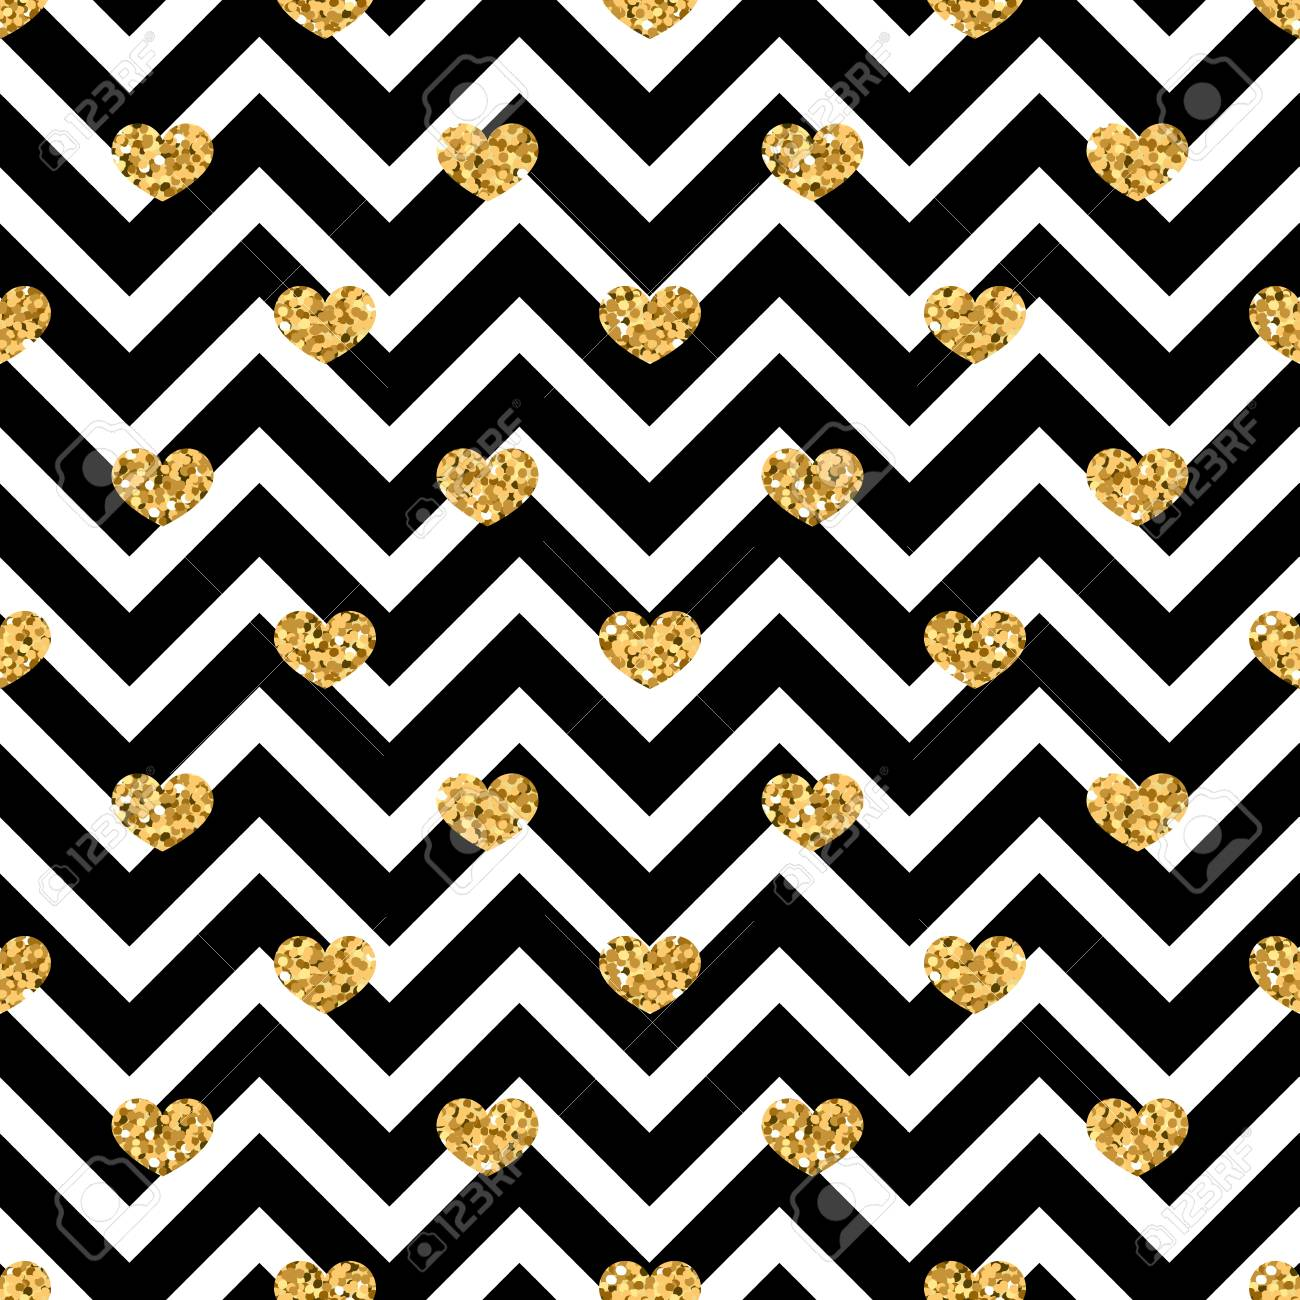 Gold Heart Seamless Pattern Black white Geometric Zig Zag Golden 1300x1300